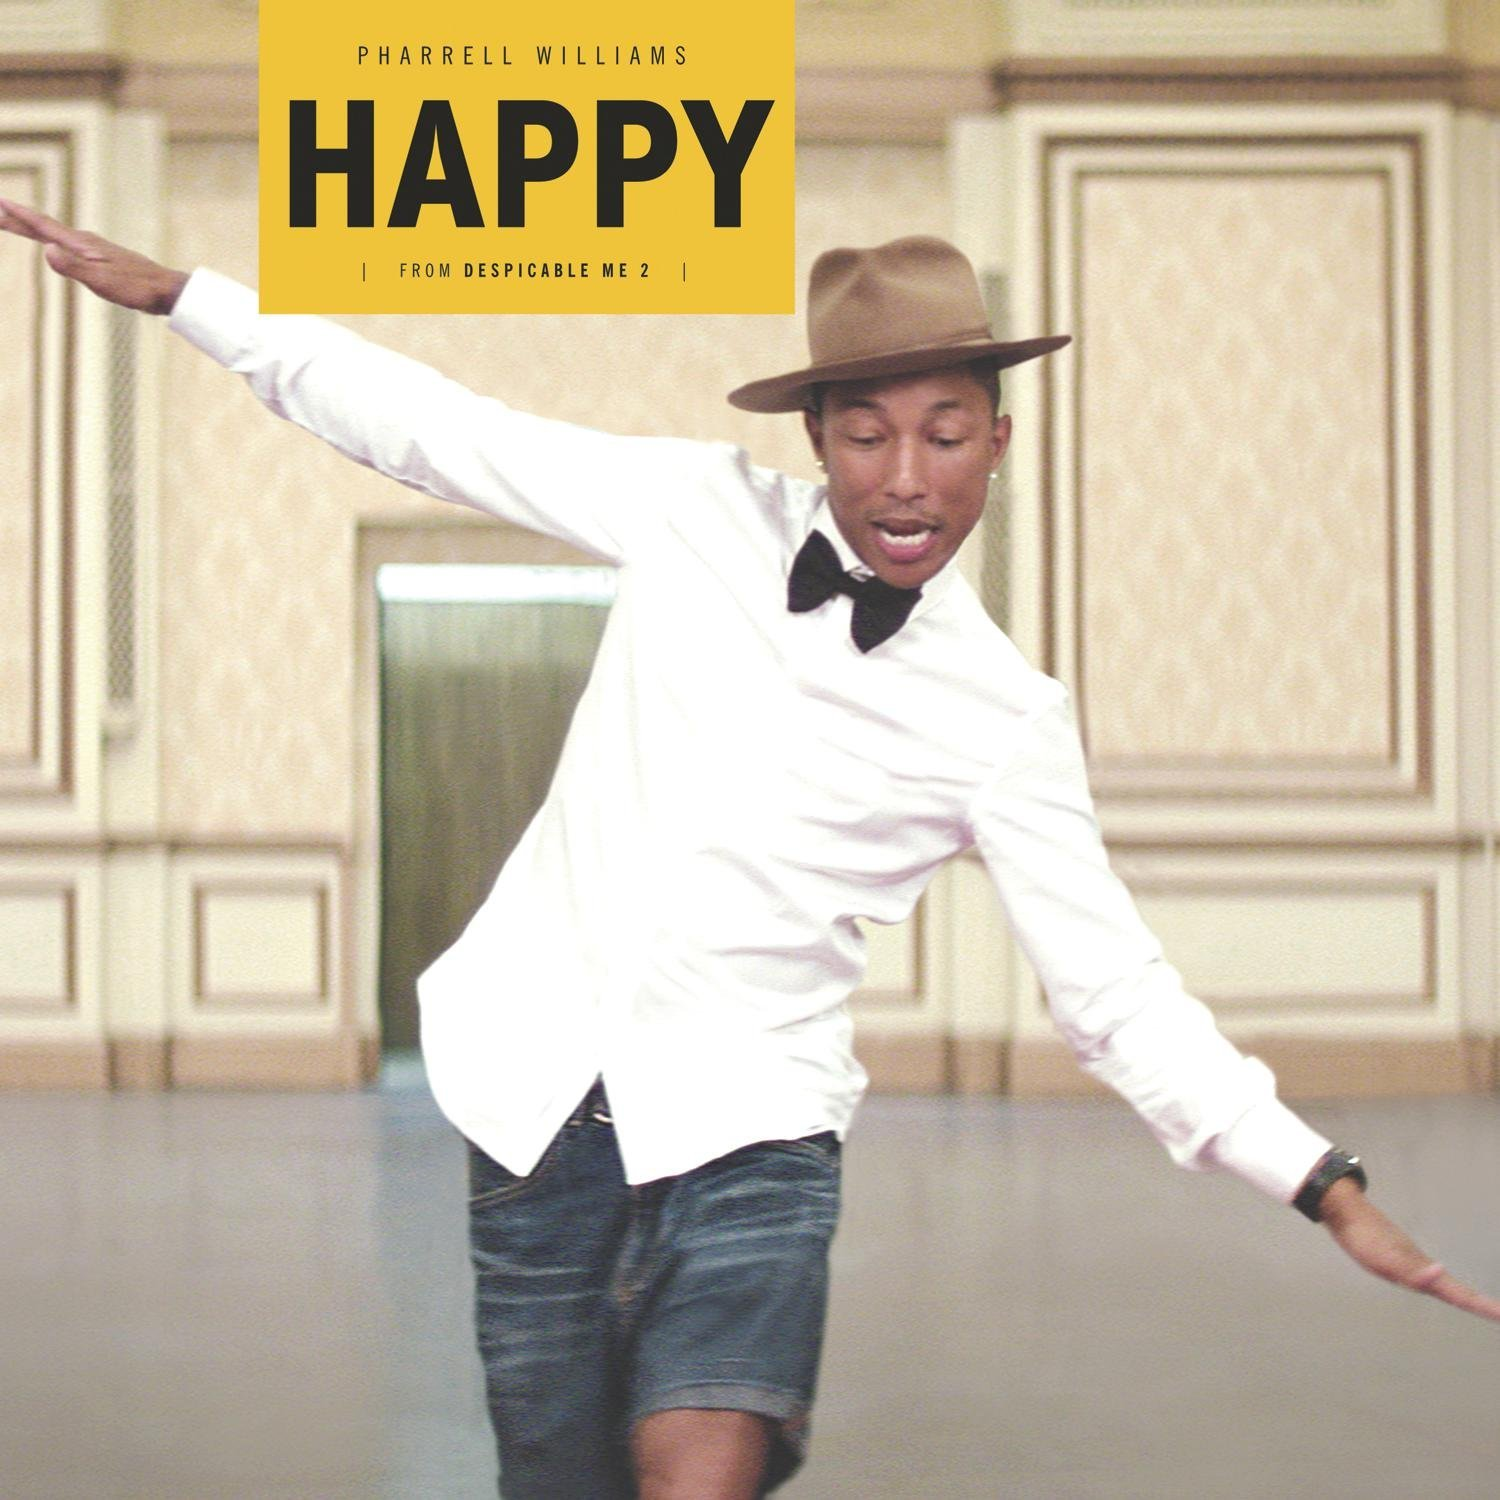 Pharrell-Williams-Happy-Despicable-Me-2-12-Vinyl-Single-UK-Pop-2014-New